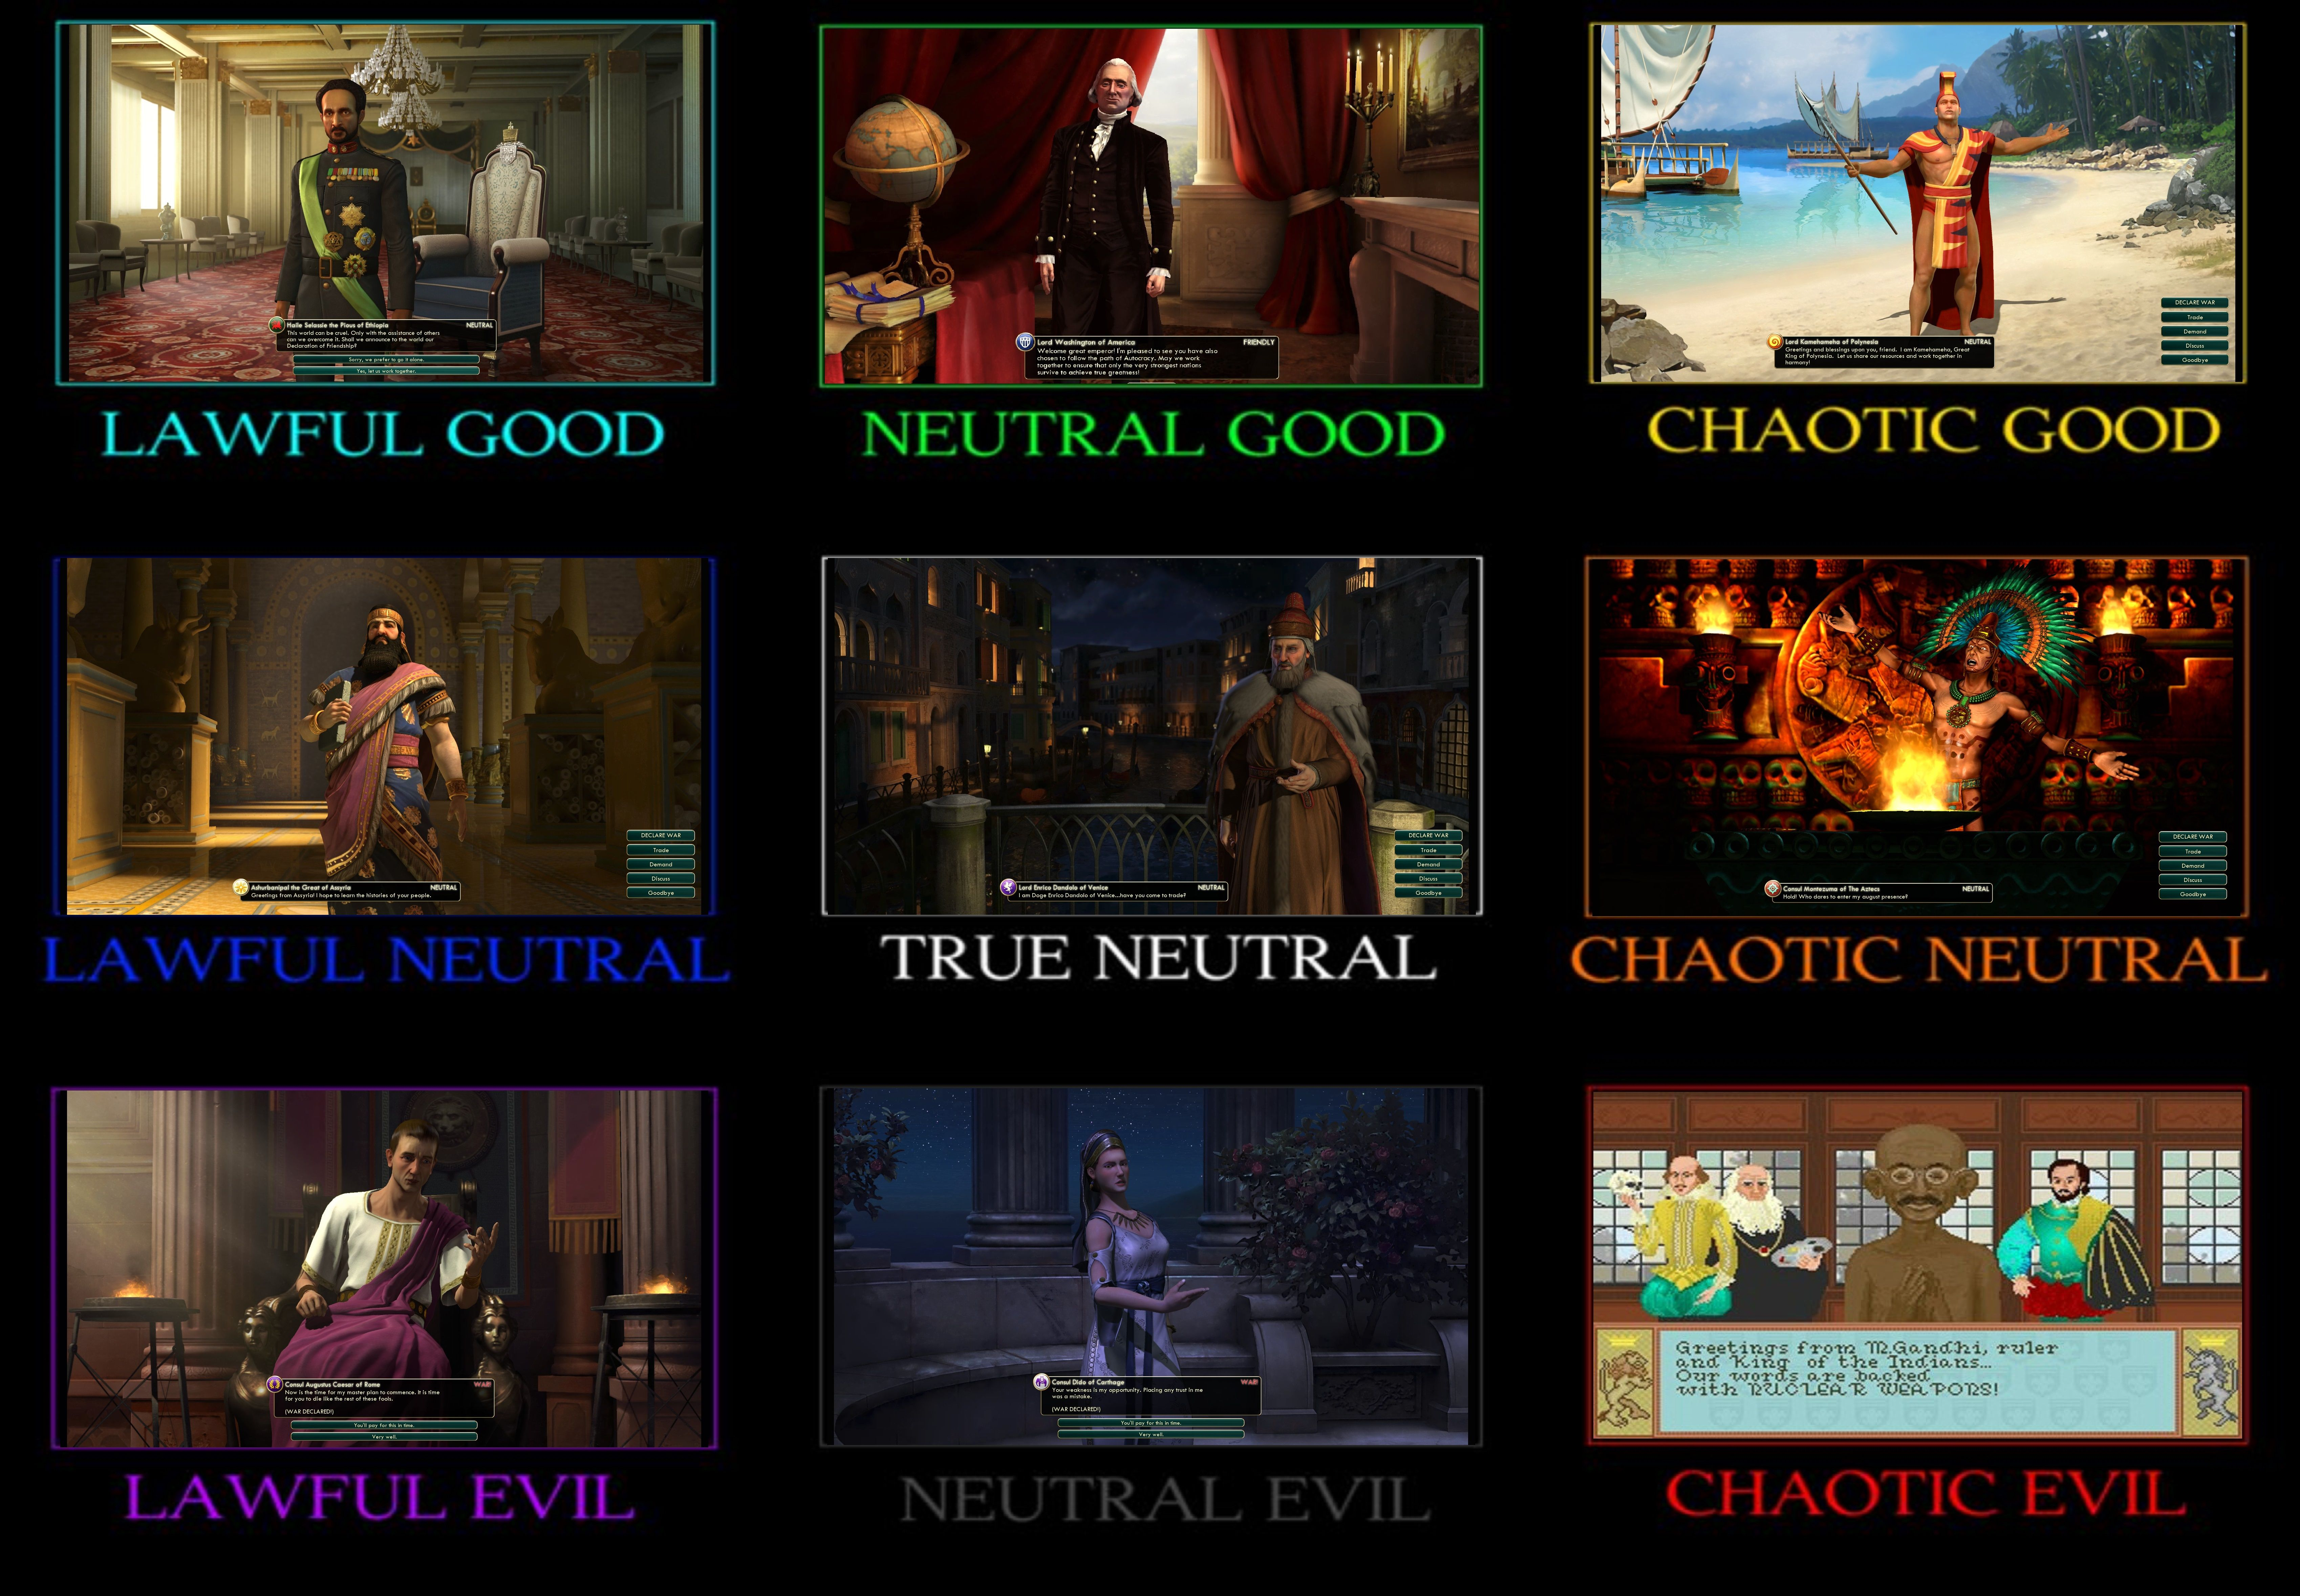 CIV 5] D&D alignment chart for some of the leaders  (Zoom in